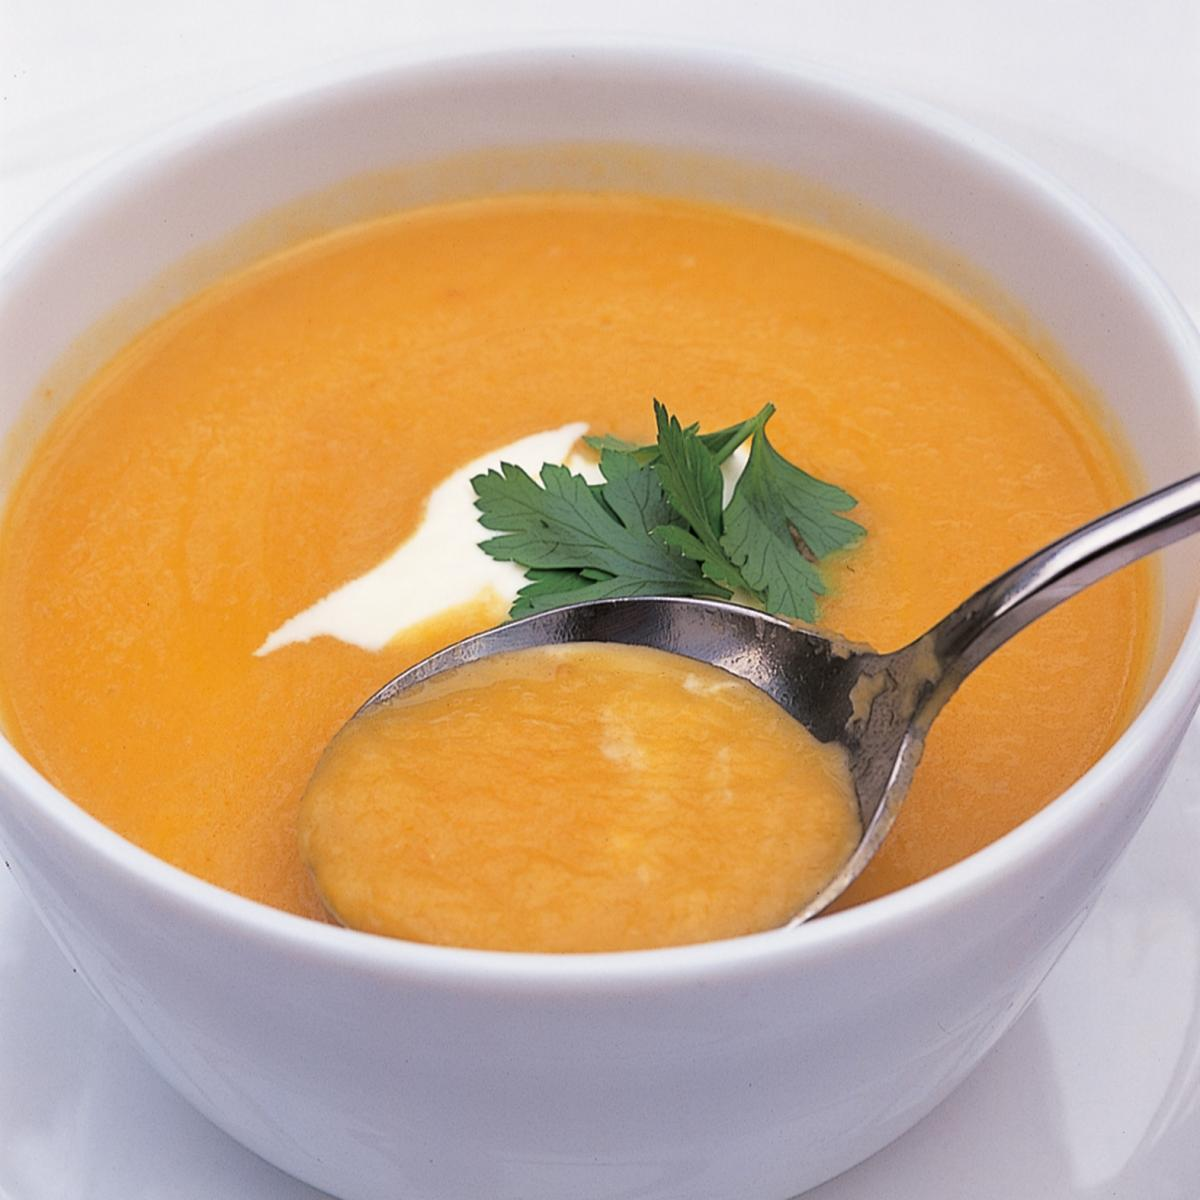 Carrot and artichoke soup recipes delia online - What kind of soup does olive garden have ...